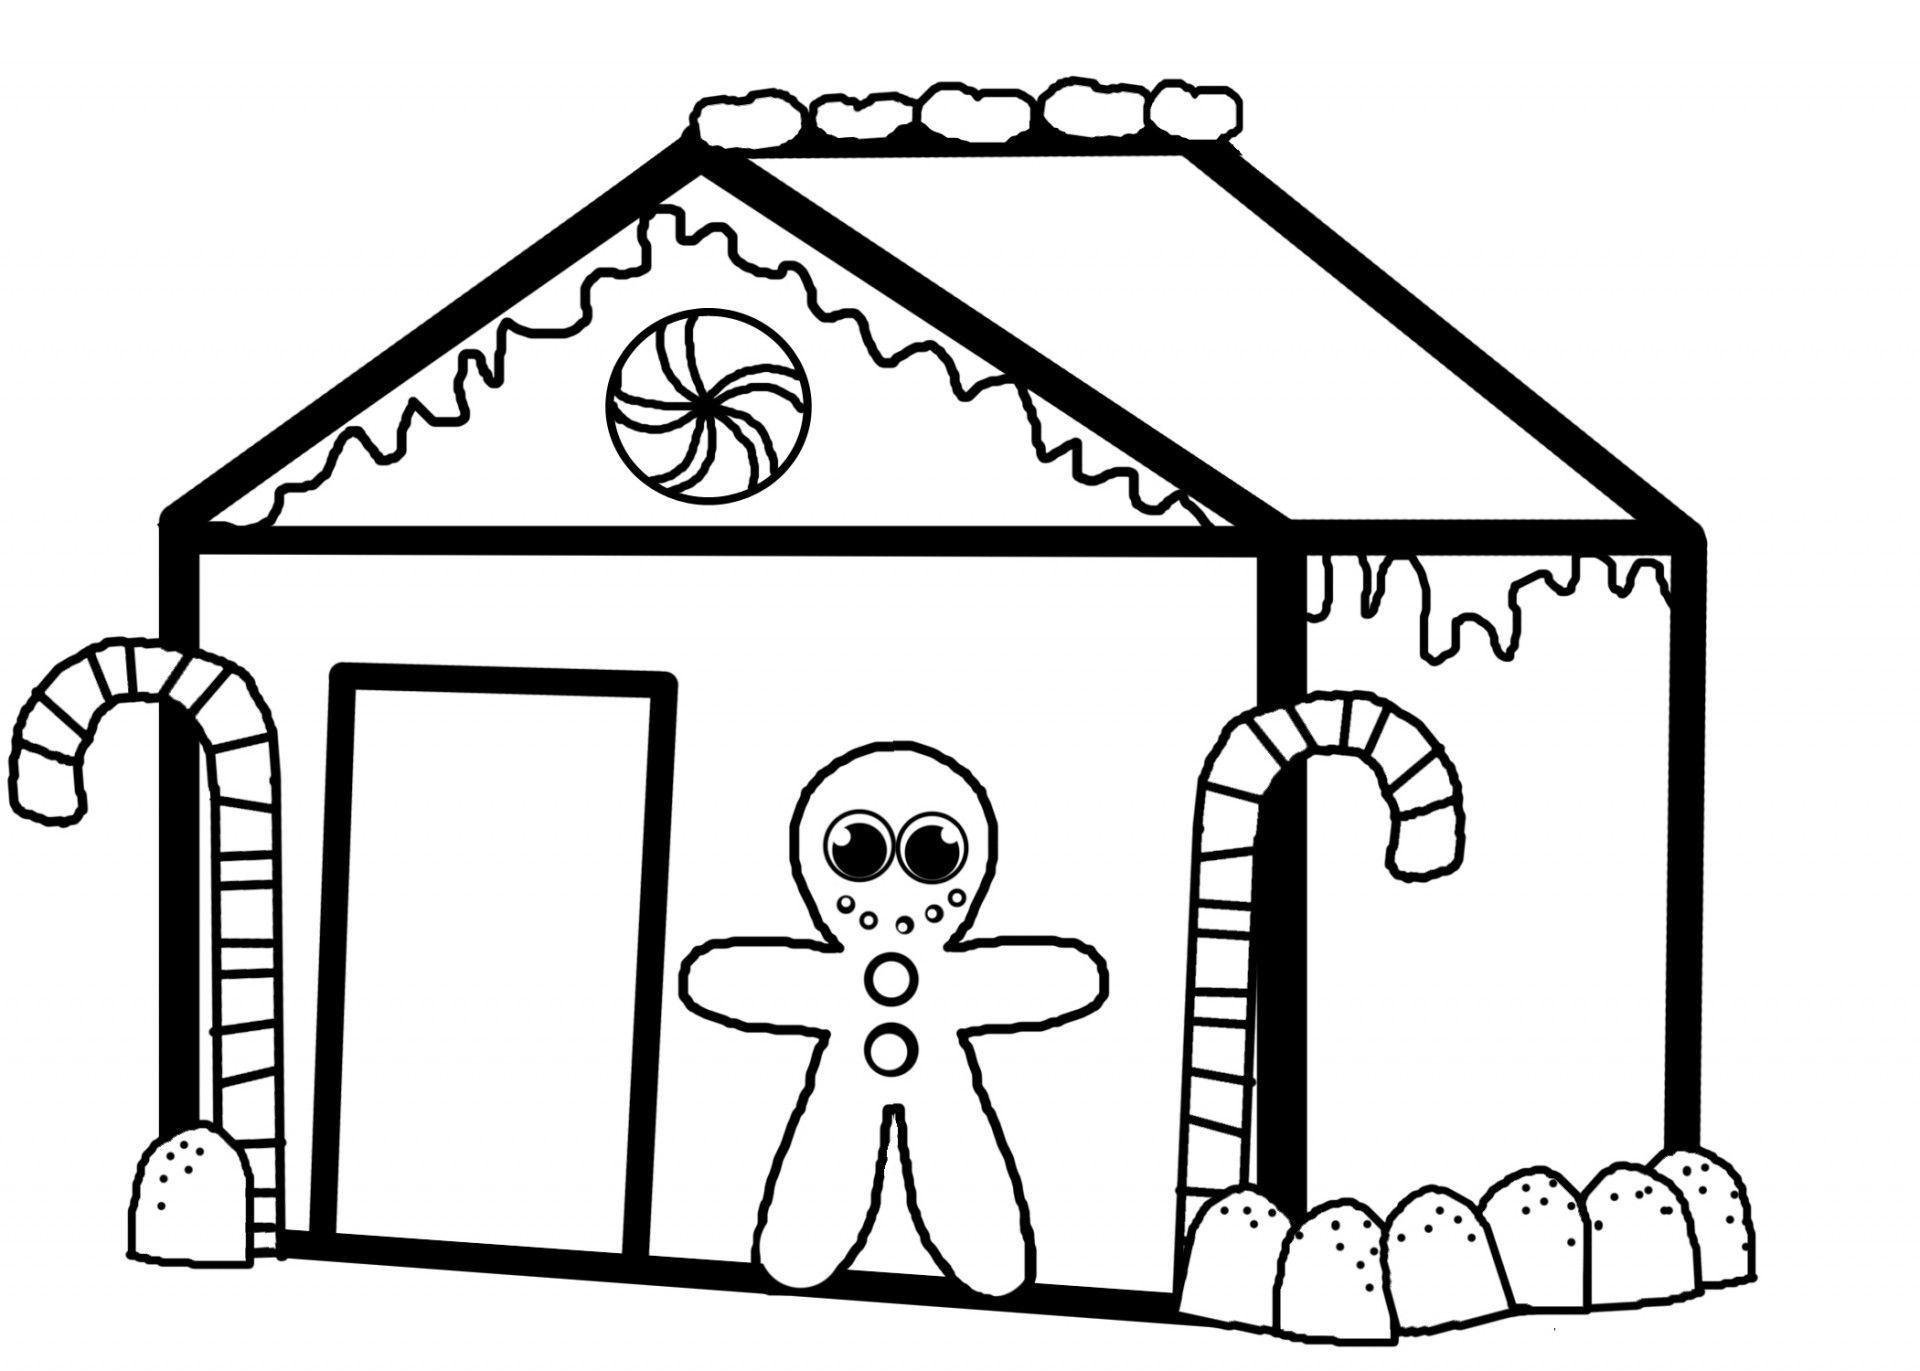 gingerbread house coloring sheet gingerbread house coloring pages coloring pages to gingerbread sheet house coloring